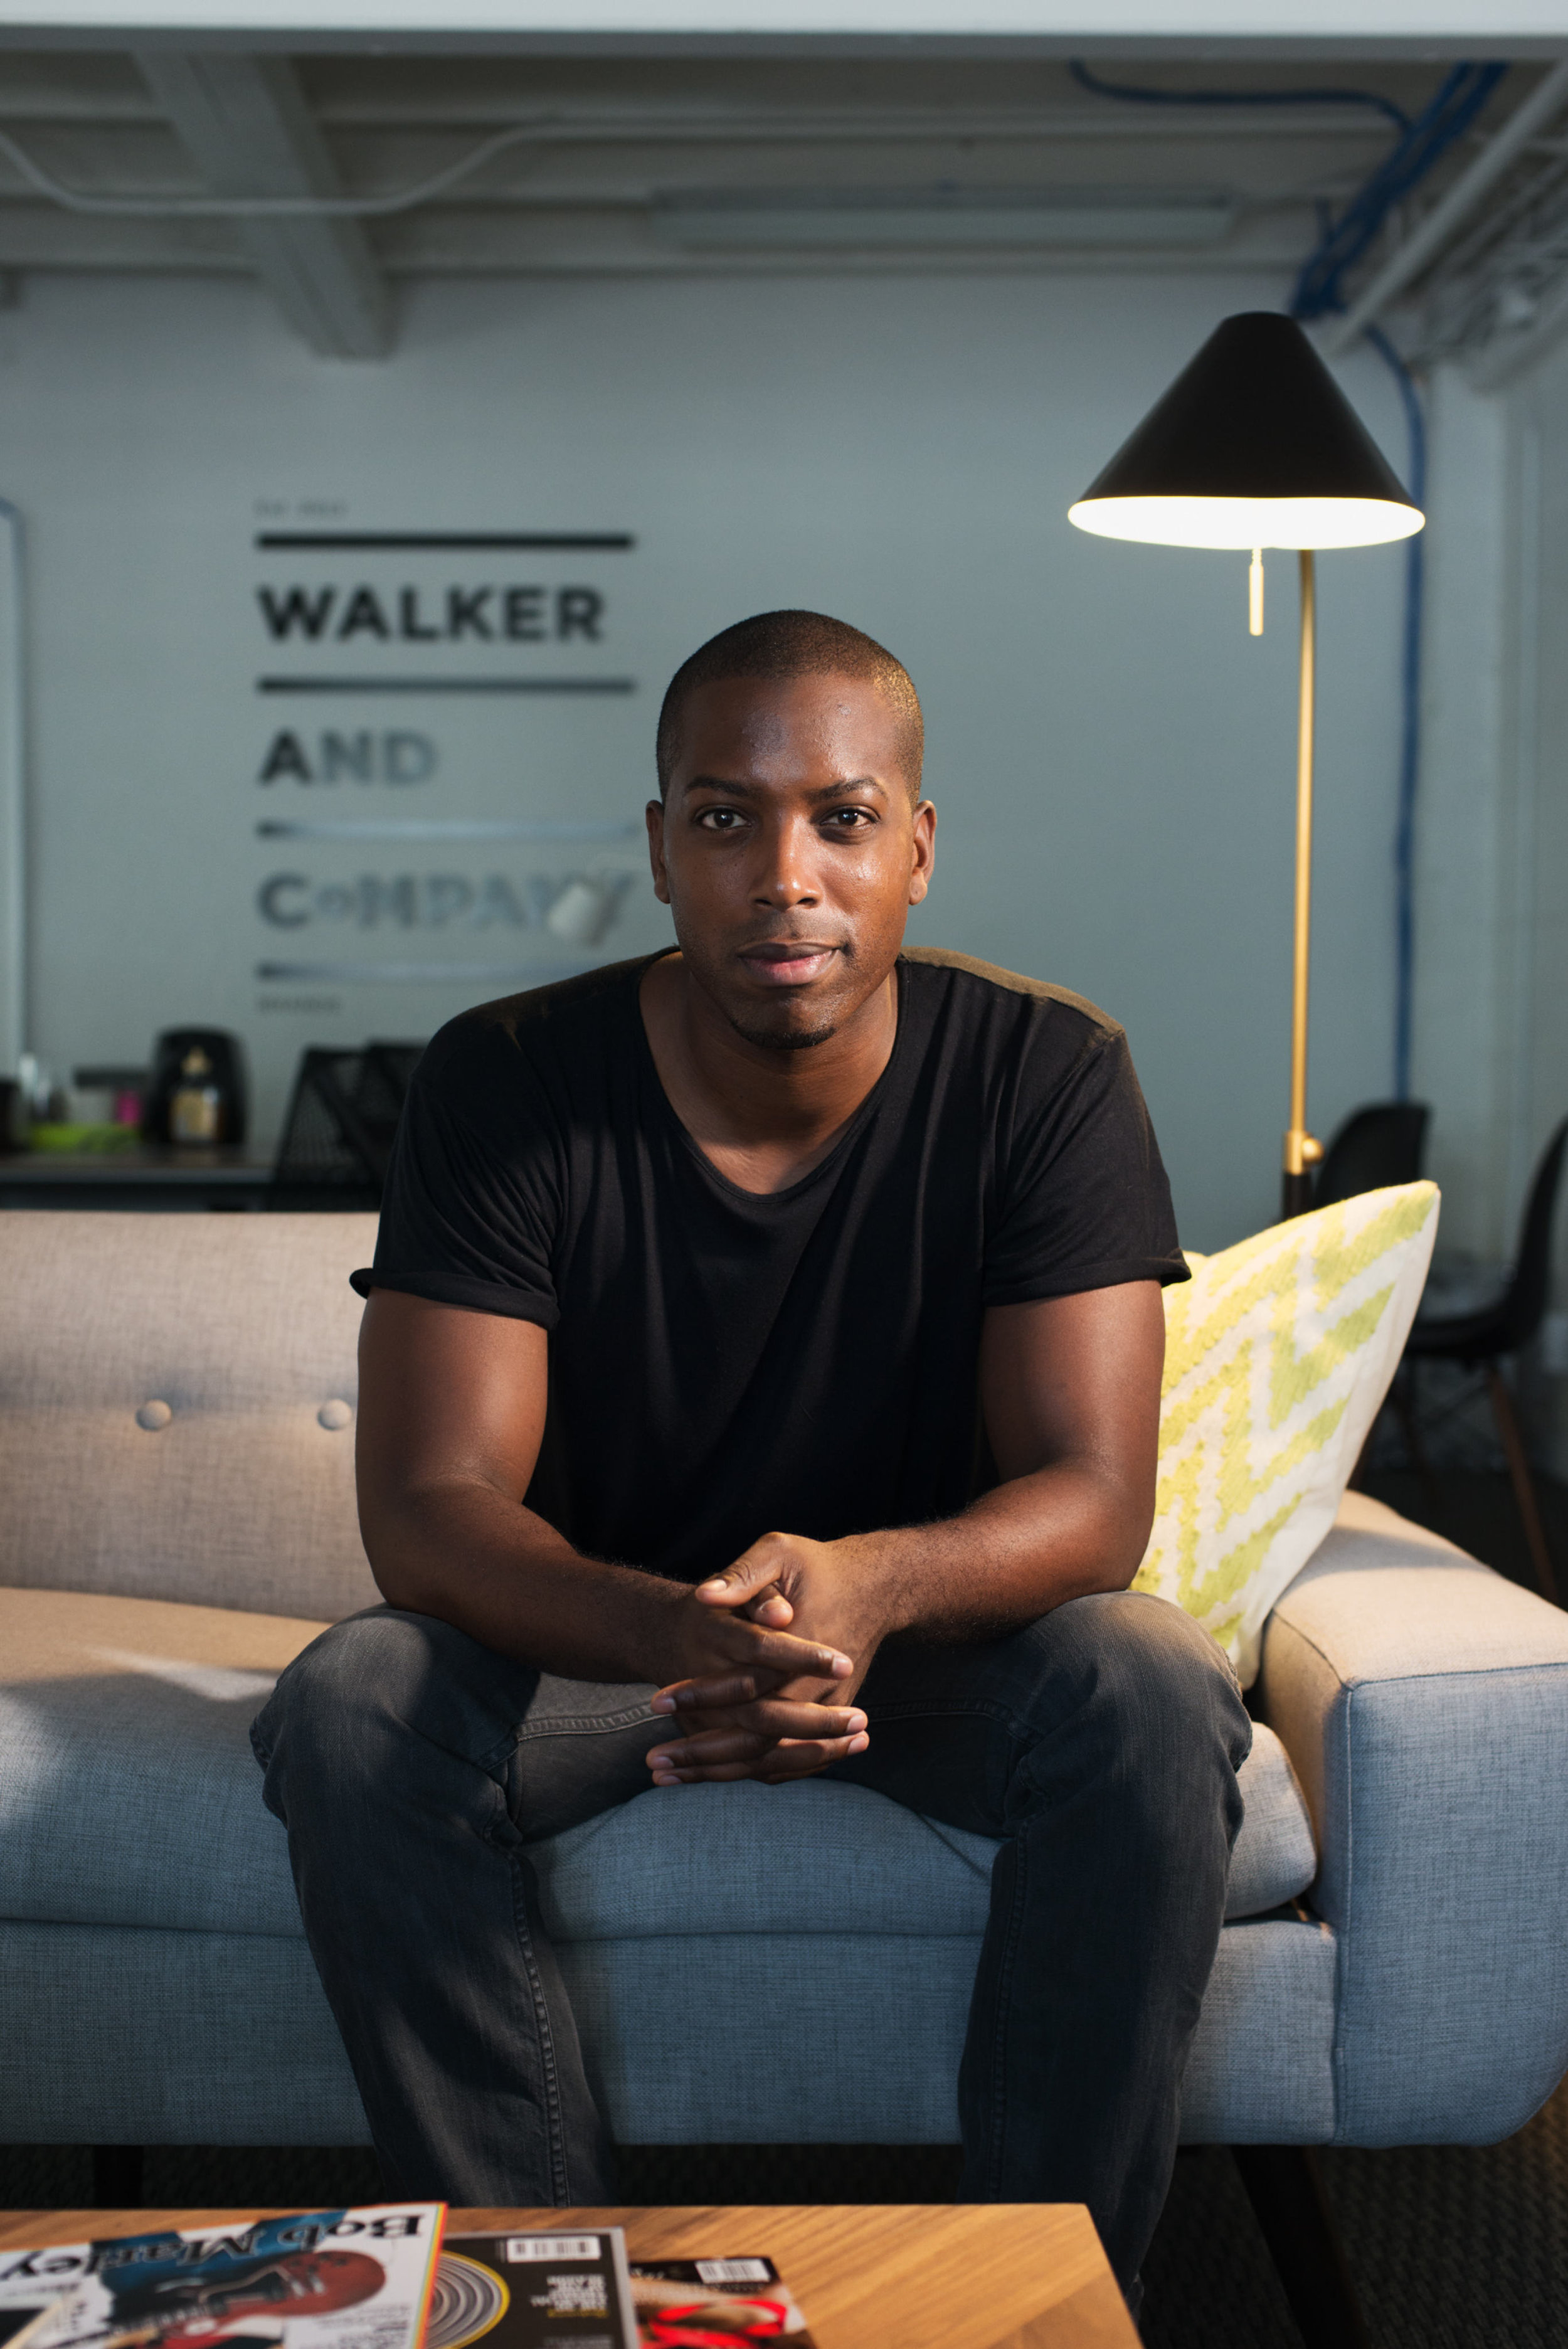 Profile on Tristan Walker, an African-American entrepreneur known for being the head of business development at Foursquare and an advocate for racial diversity in the Silicon Valley Tech world. Now he's focusing on his start-up Walker and Co., which aims to transform health and beauty for people of color. Photographed for Fast Company Magazine